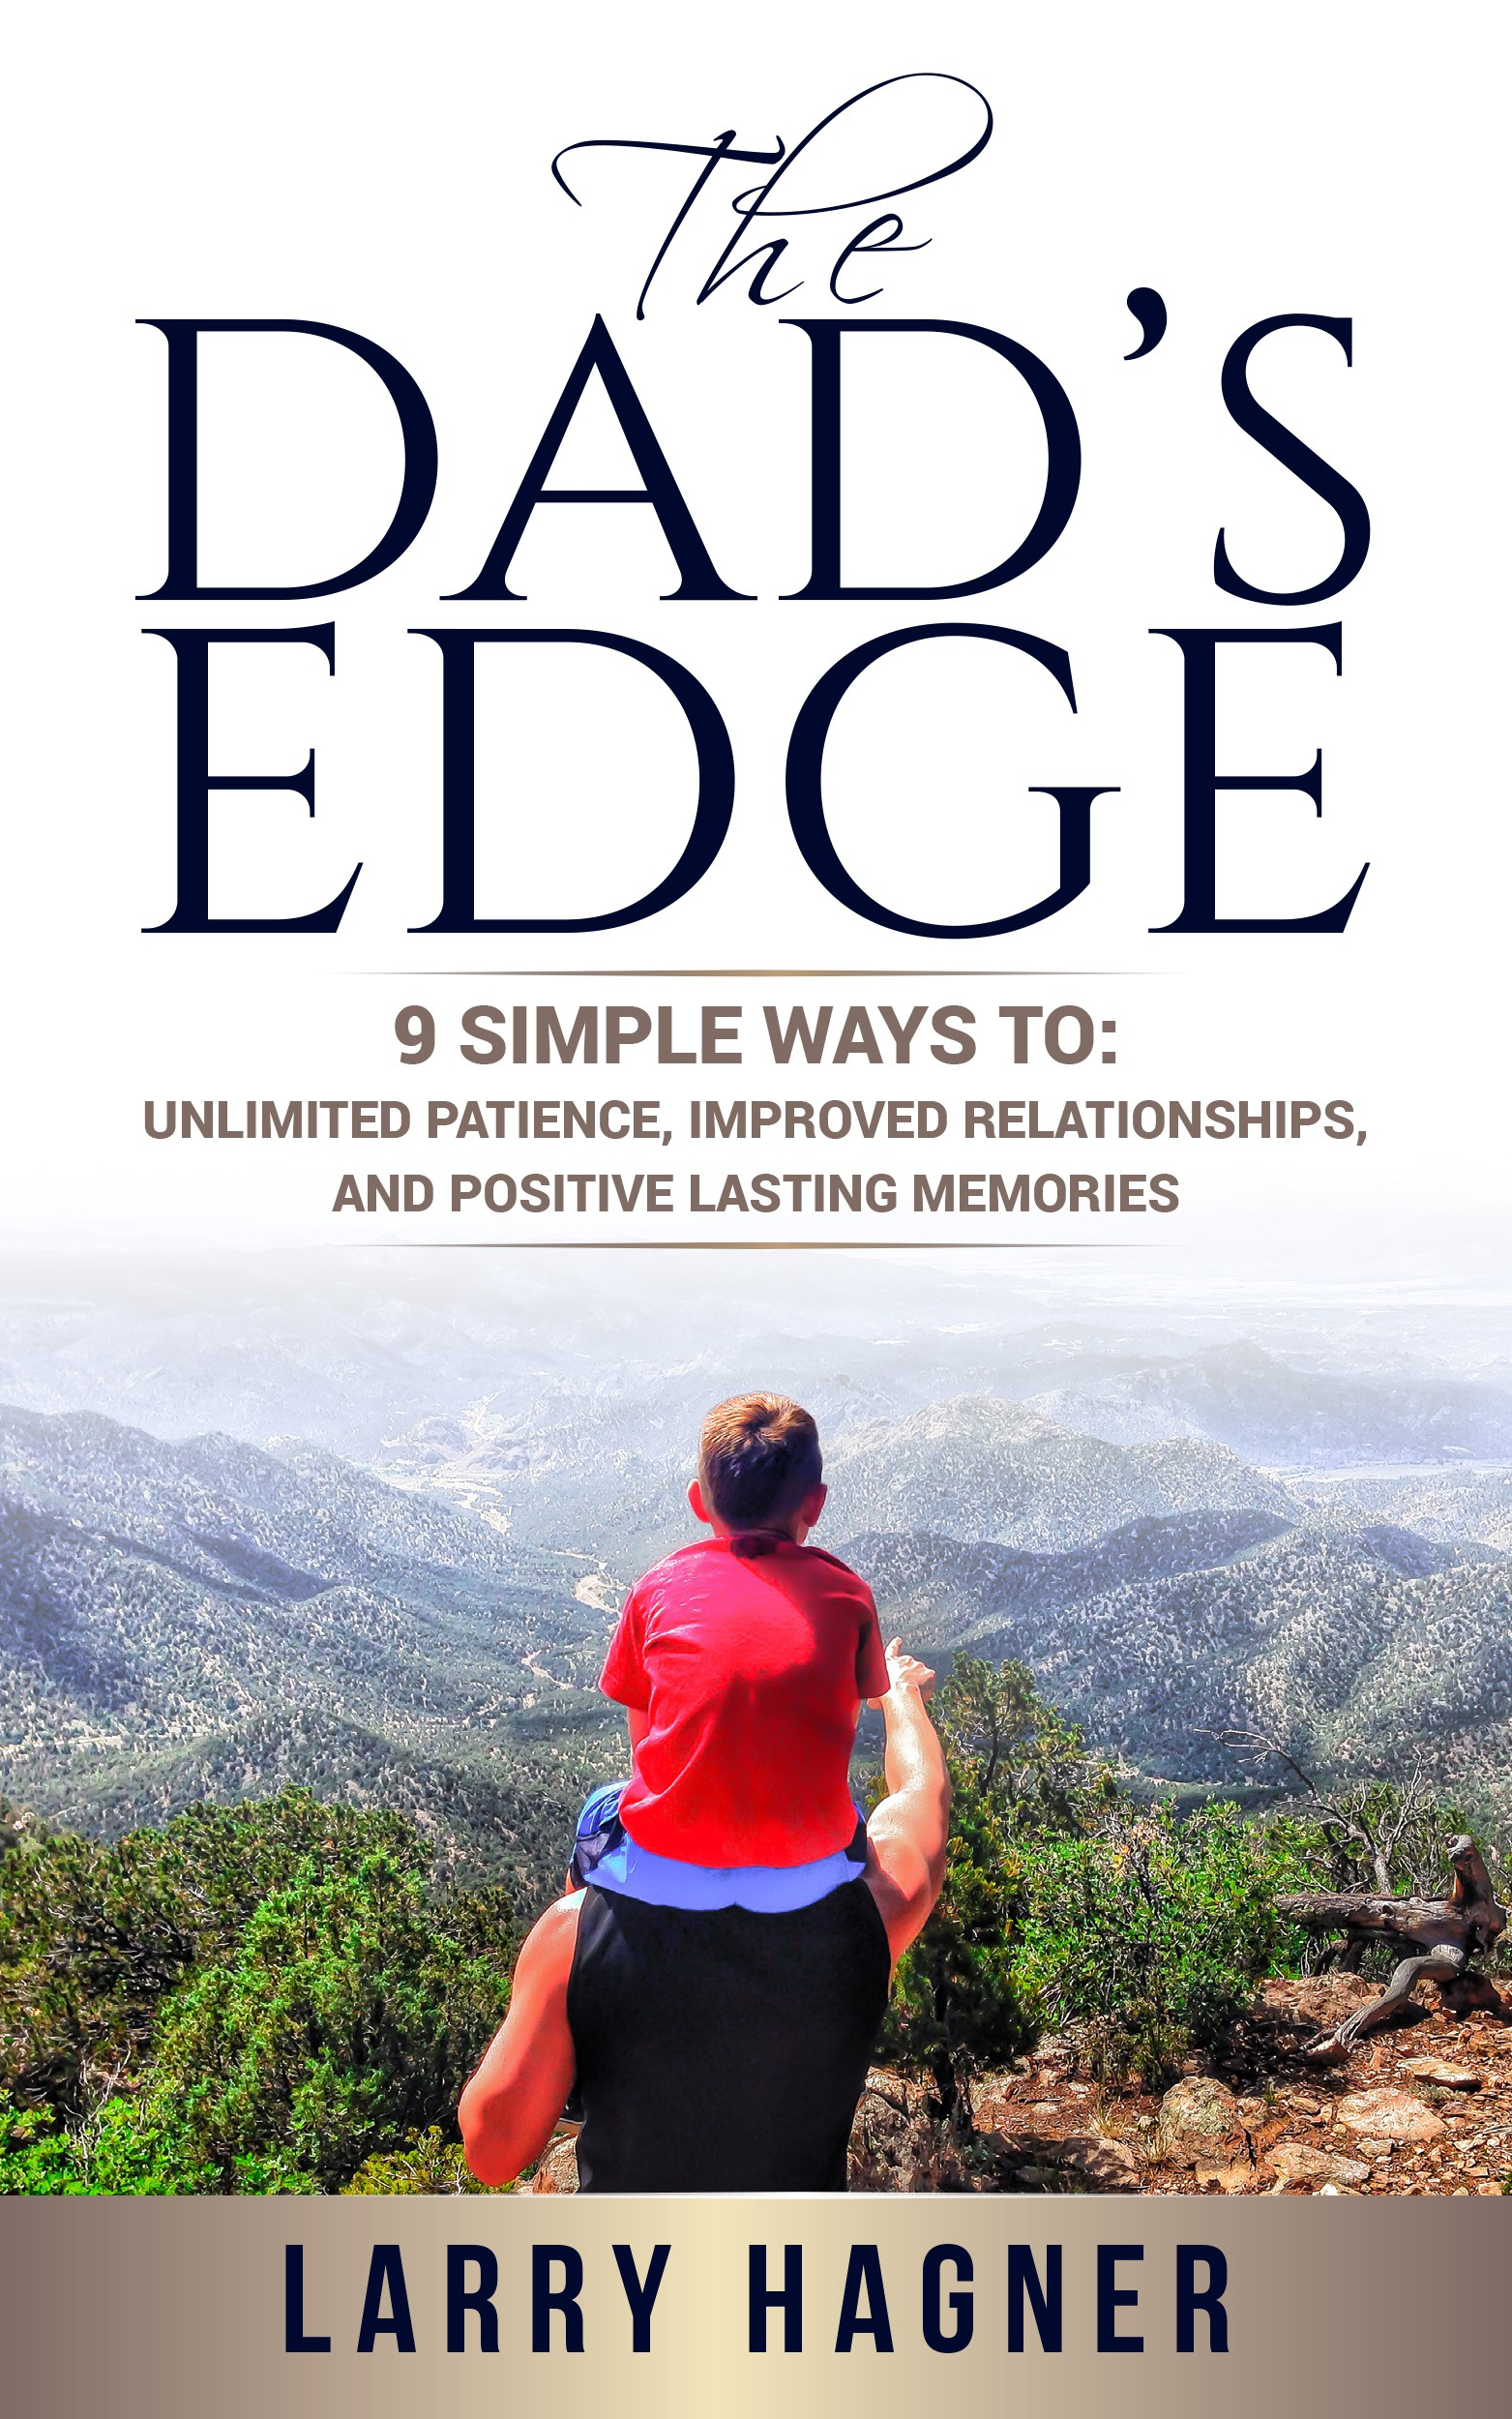 CREATE A COVER OF A BOOK THAT WILL HELP DADS BE AMAZING AND SHOW UP BETTER FOR THEIR FAMILIES